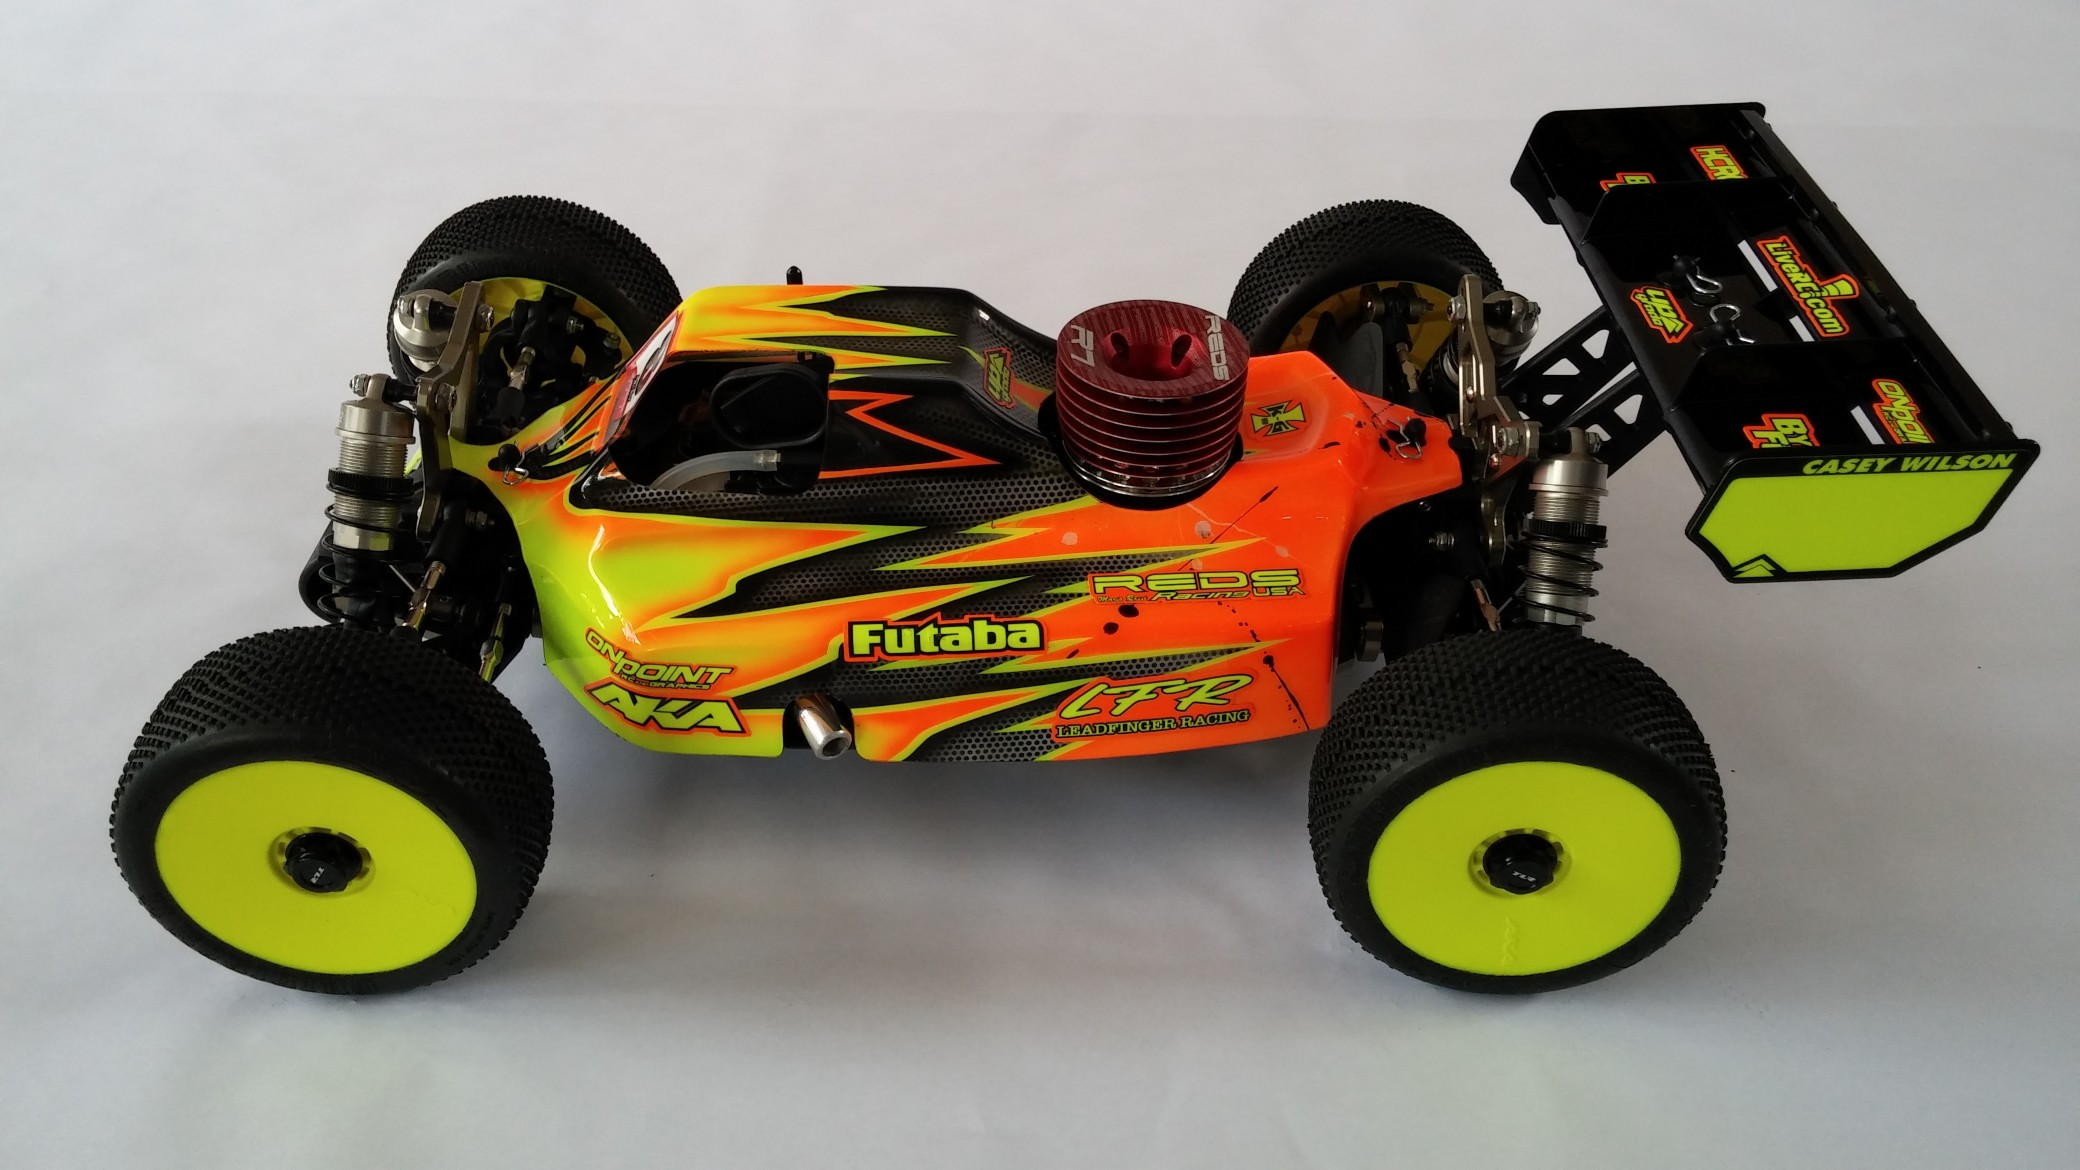 Leadfinger LFR Assassin body (clear) for TLR 3.0 nitro buggy